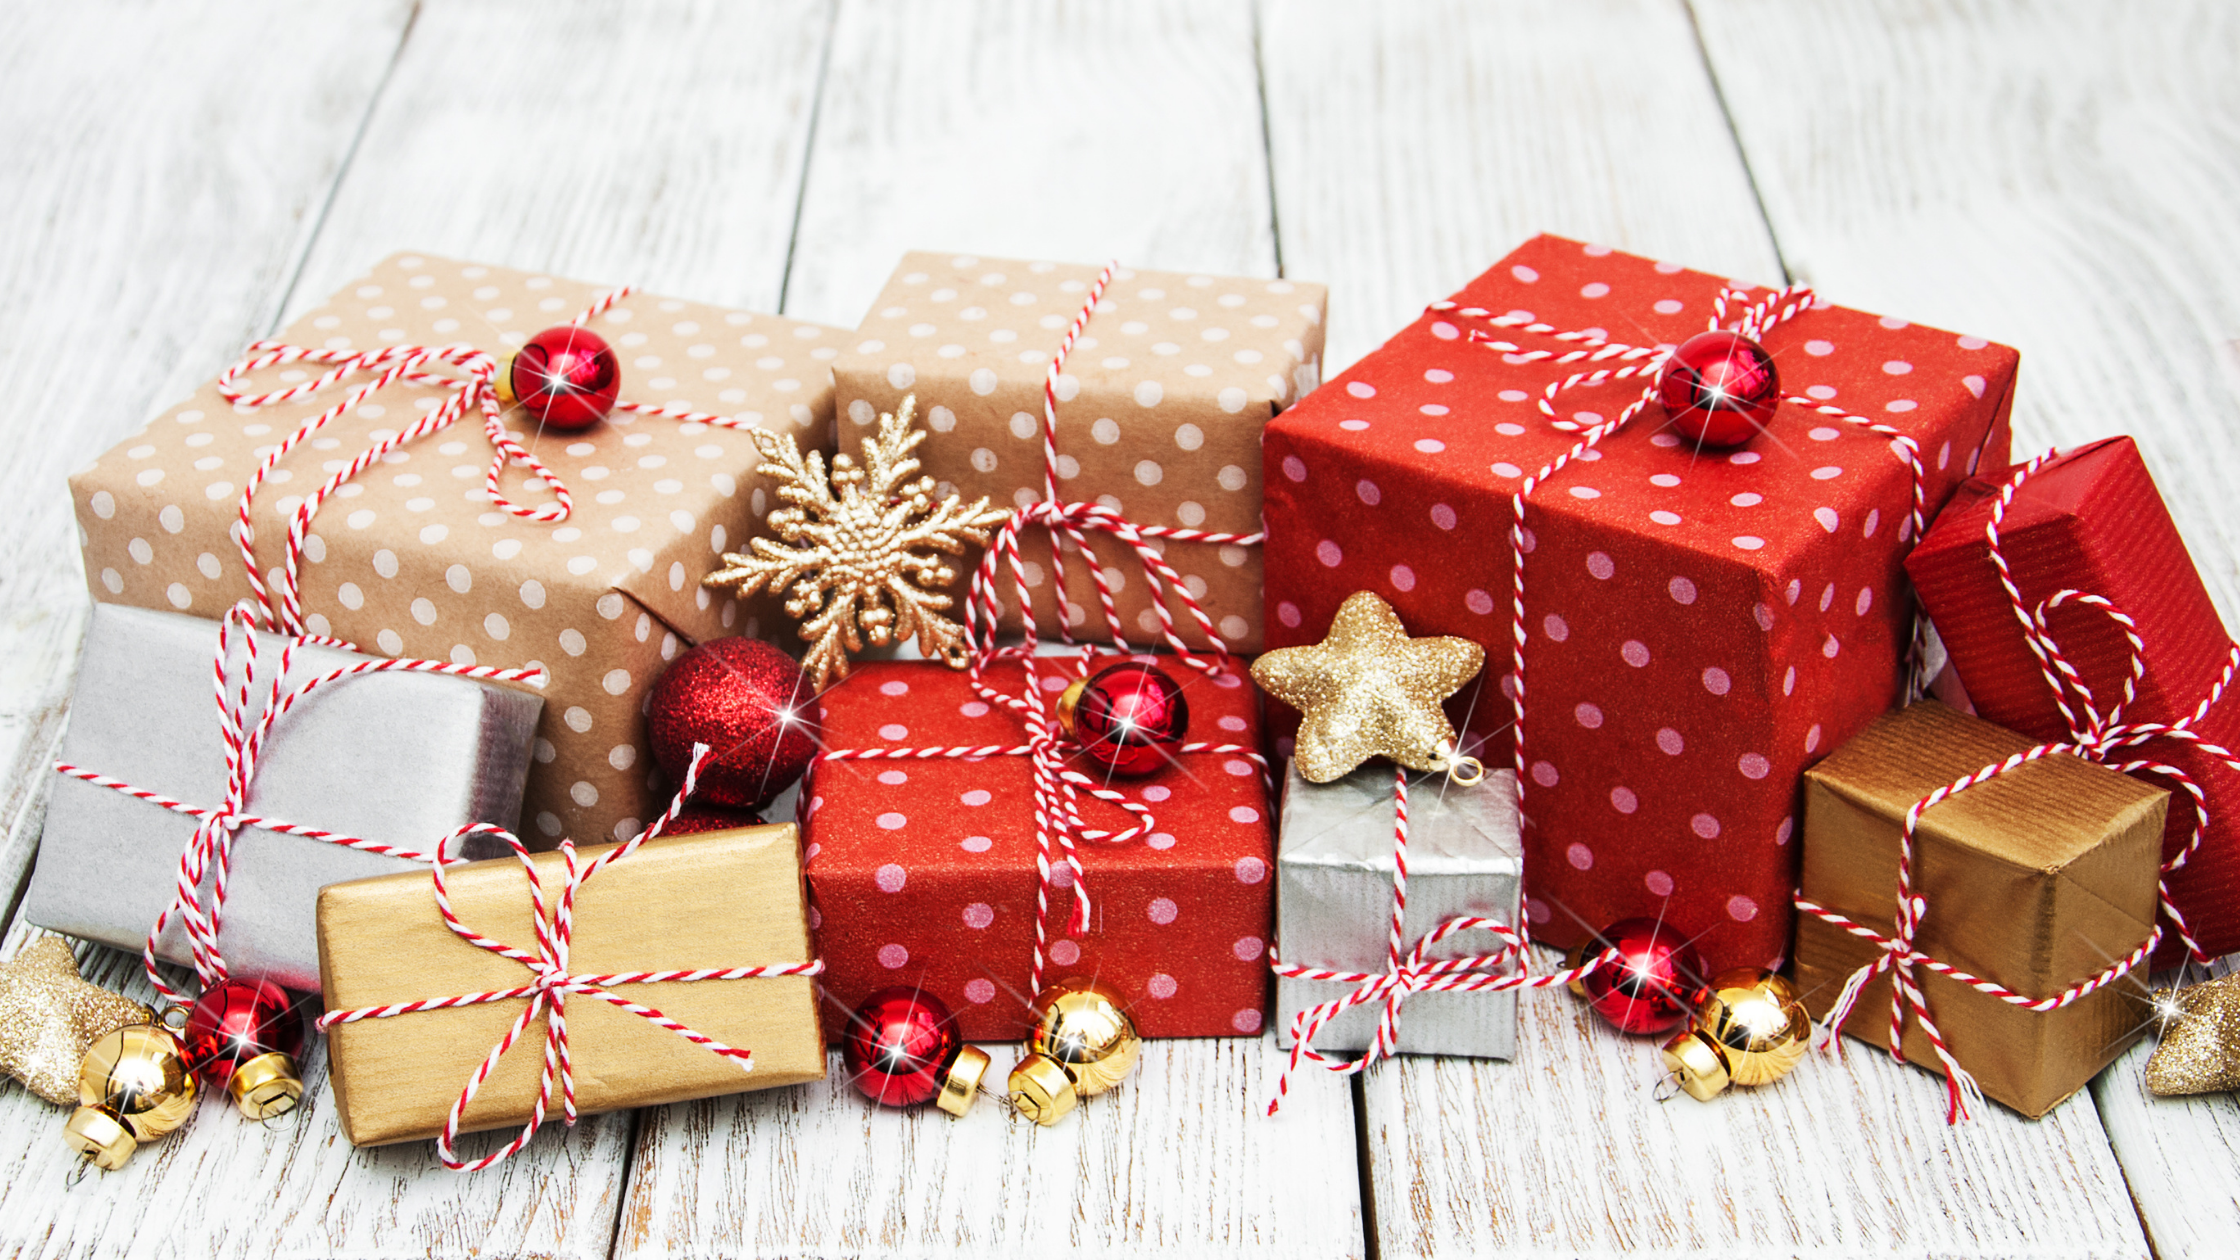 Things to ponder: on Christmas gifts